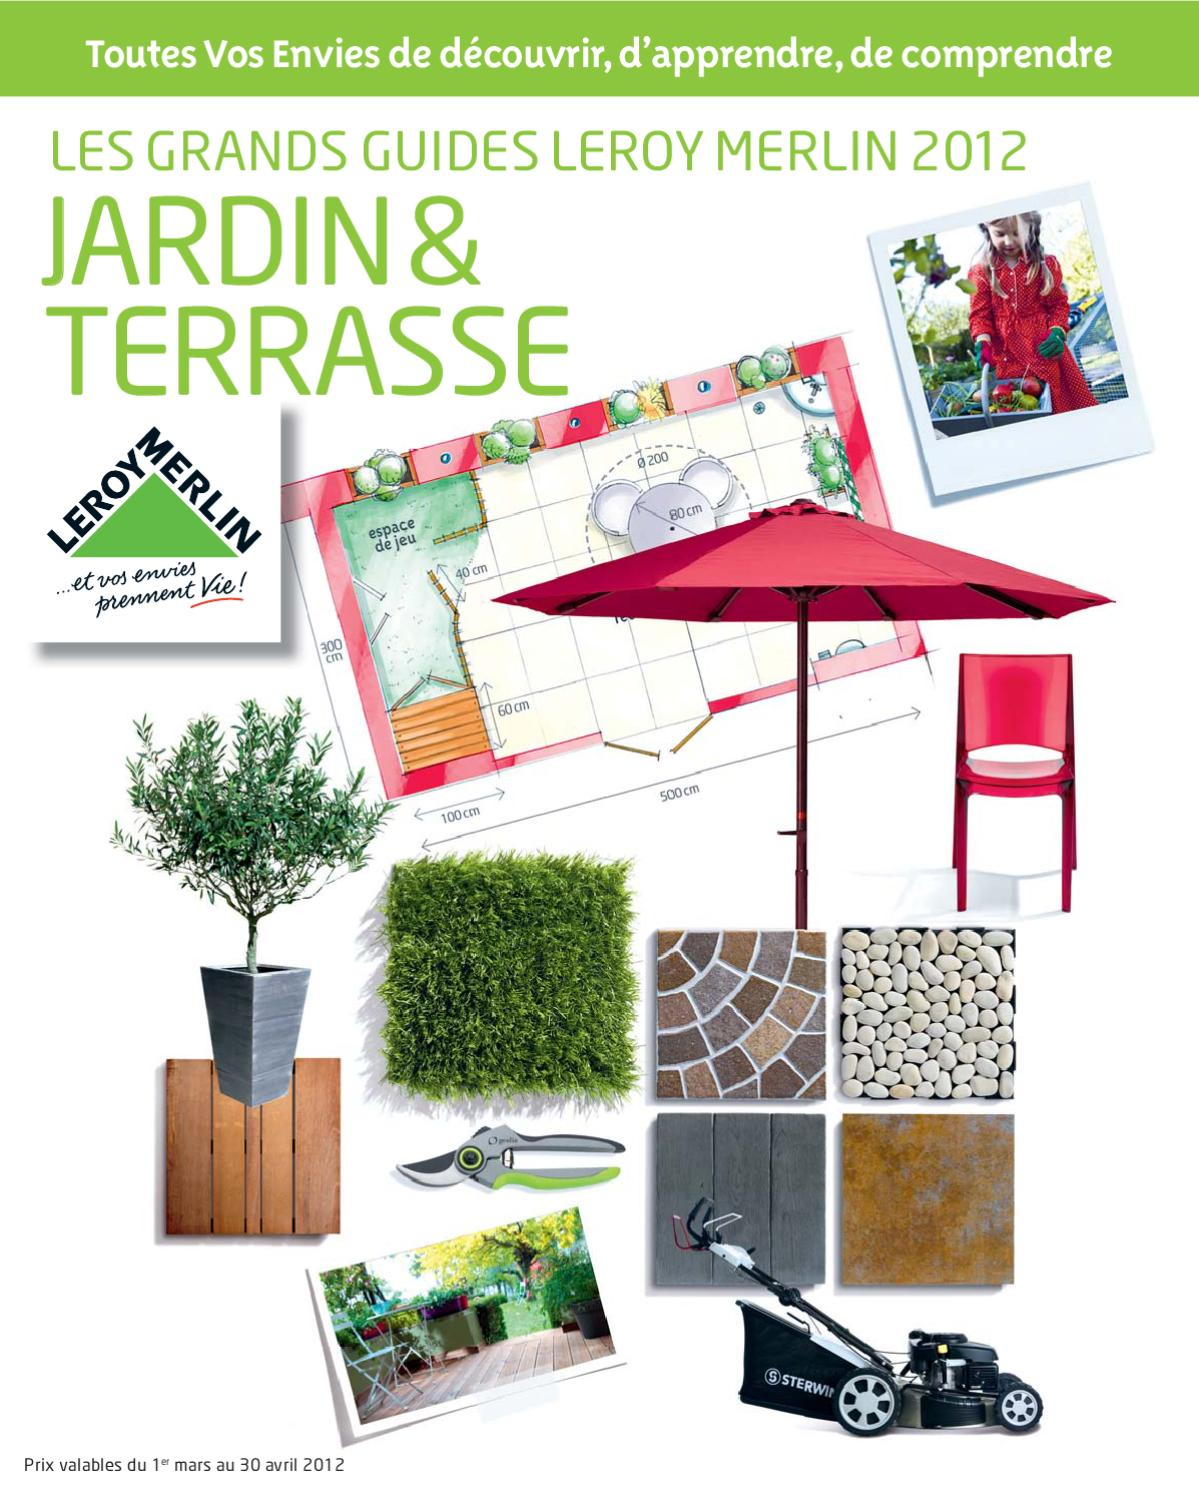 Tabouret De Jardinage Leroy Merlin Catalogue Jardin Leroy Merlin